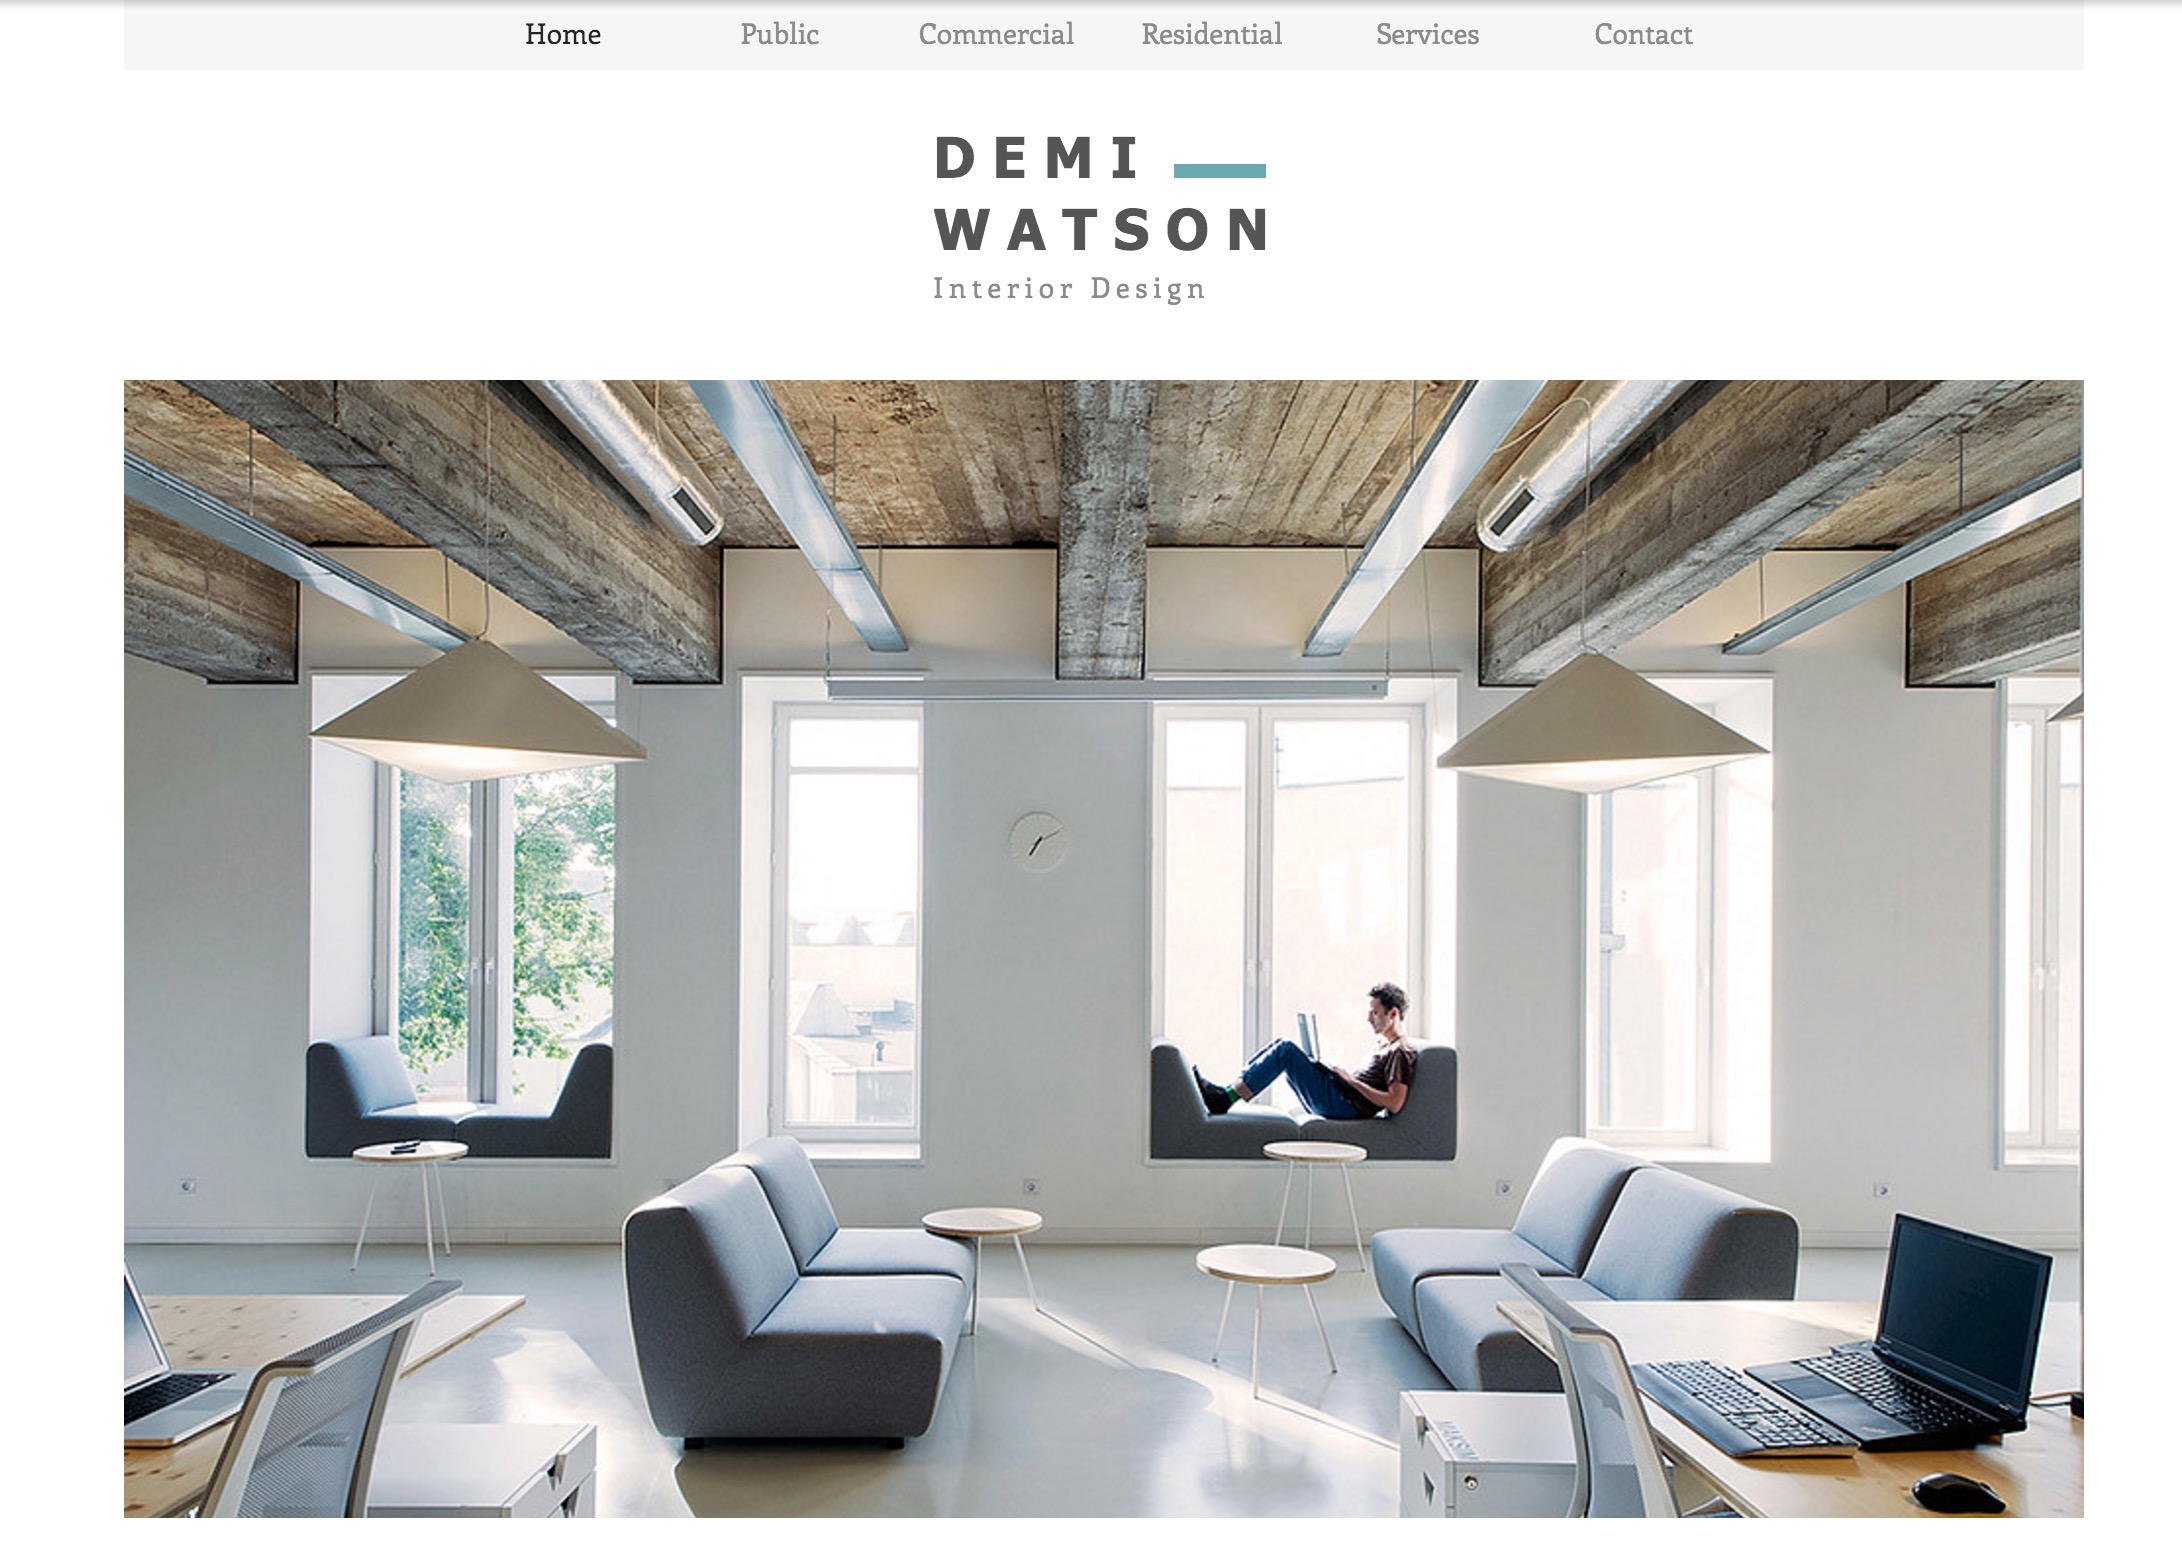 Interior Design Portfolio Theme